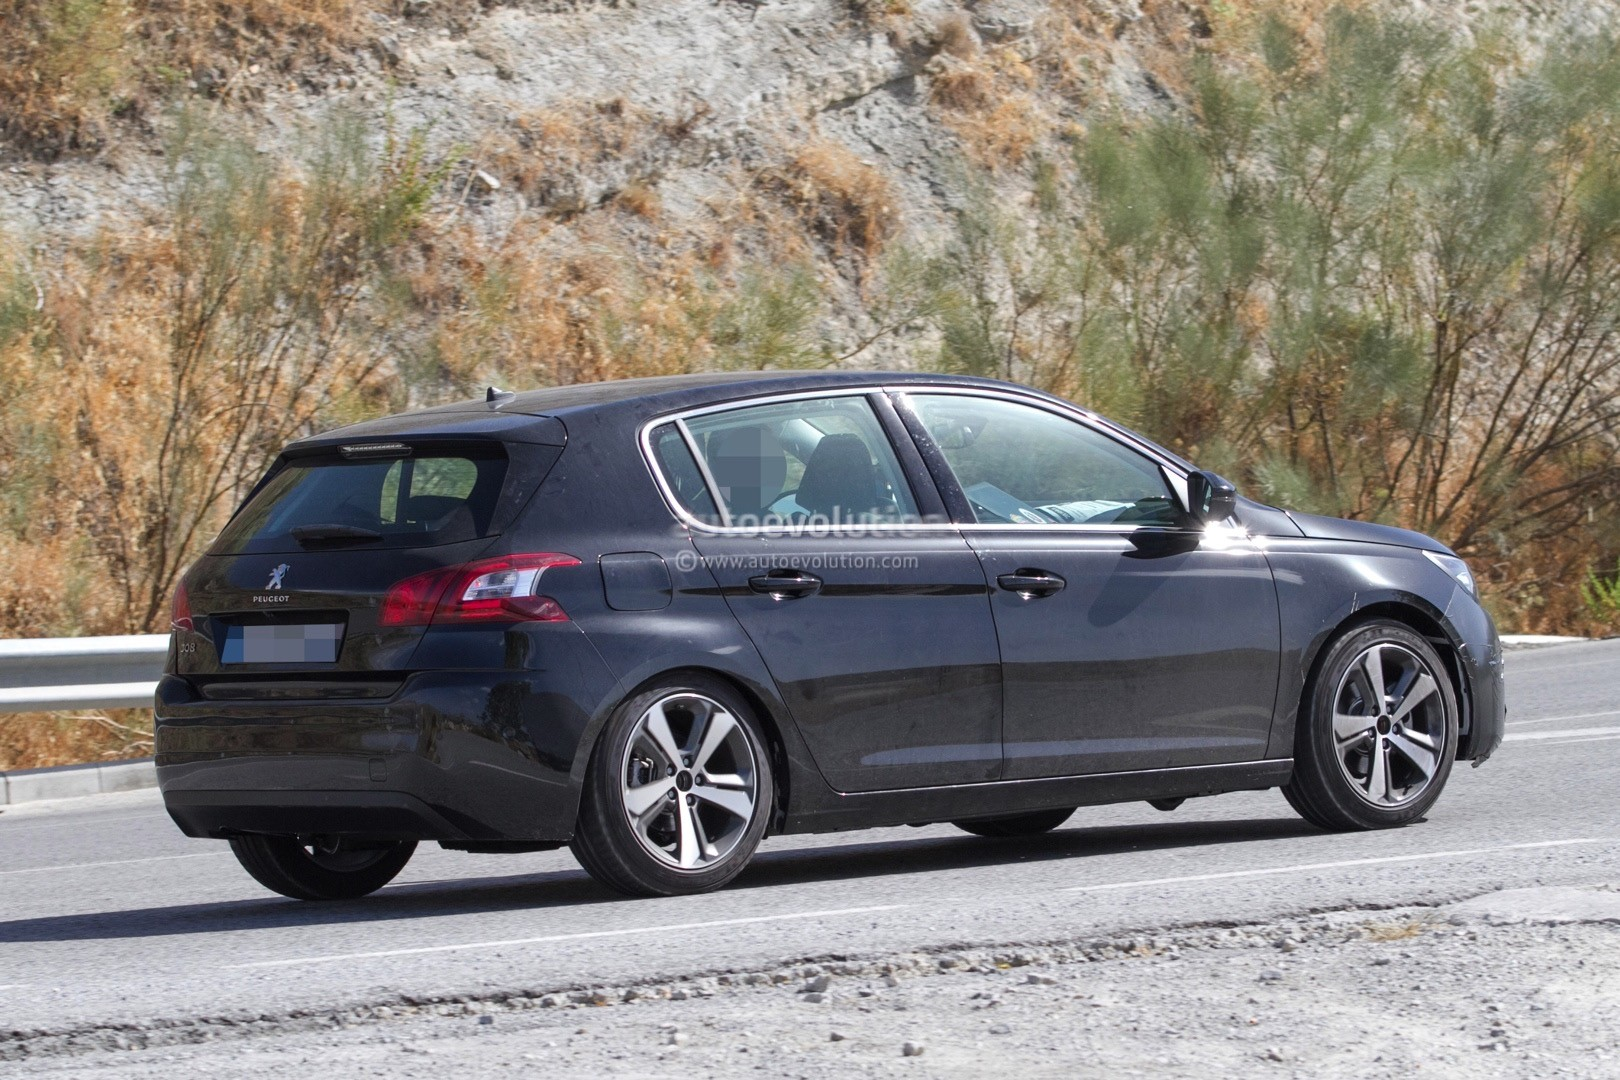 2017 - [Peugeot] 308 II Restylée - Page 11 Peugeot-prepares-to-facelift-308-model-lineup-for-2017_5